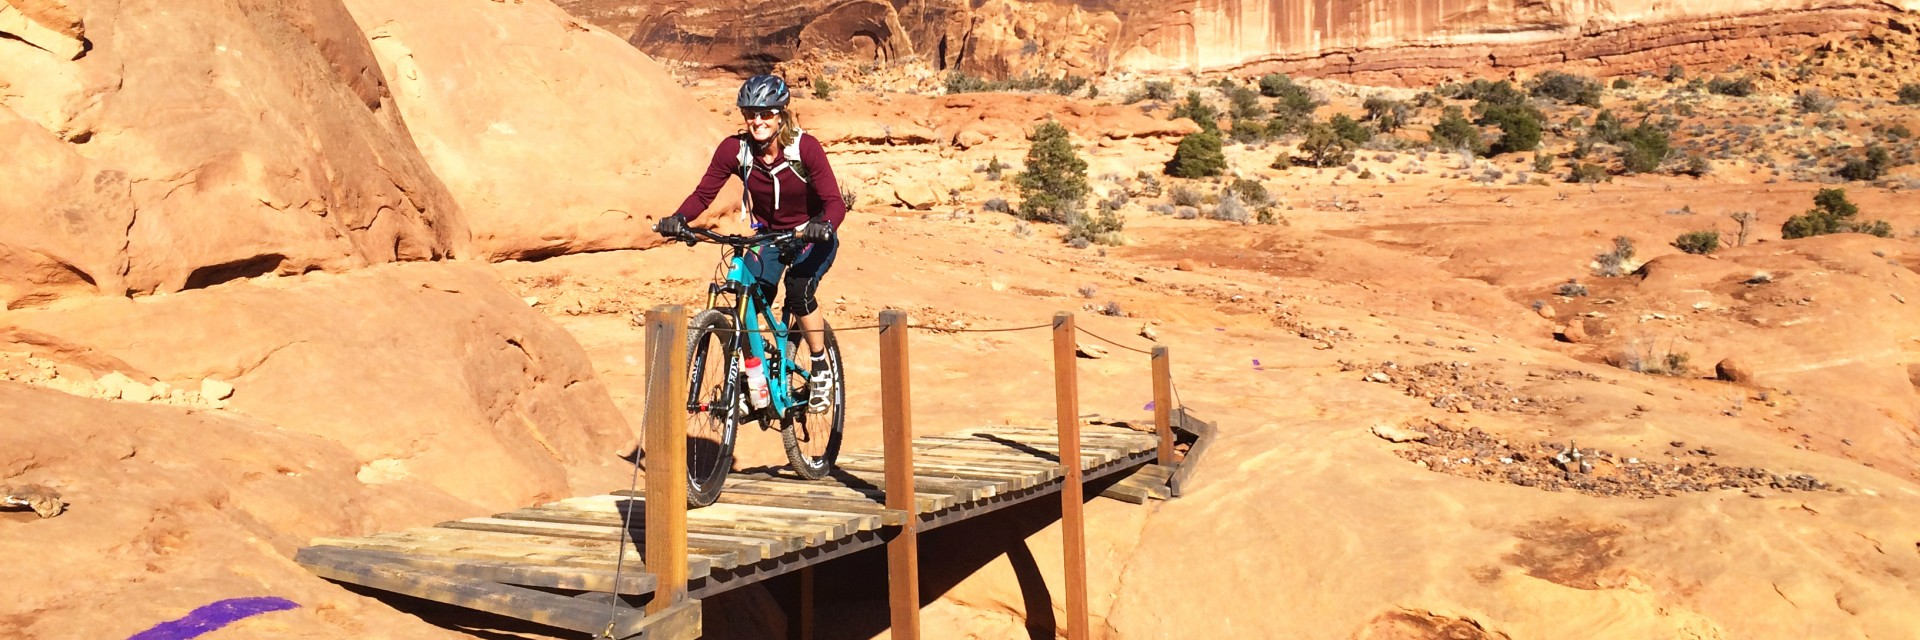 The Big Mesa section of the Navajo Rocks Trail includes a few wooden bridges across shallow ravines, as this mountain biker discovers on a guided half-day tour near Moab, UT